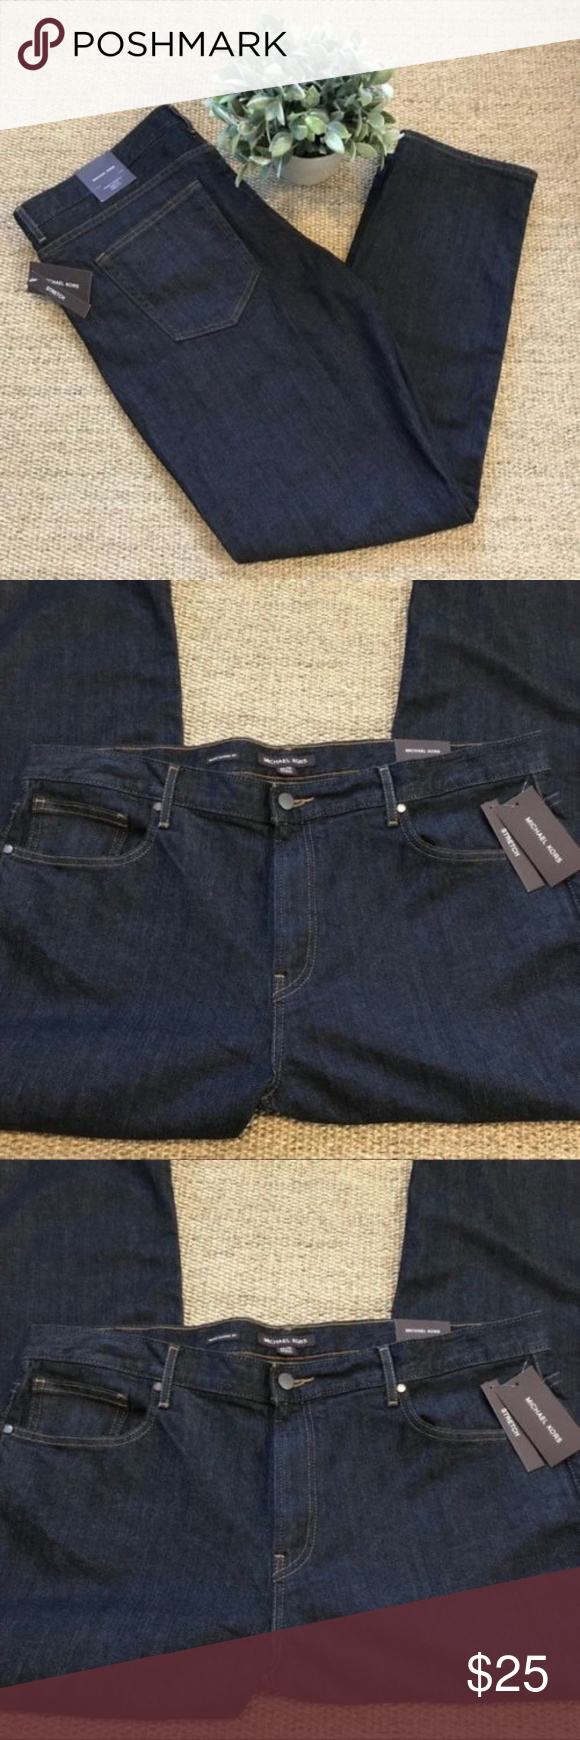 e1080f40ce19 Michael Kors Black Wash Grant Classic Fit Jeans Brand New!! Awesome ...